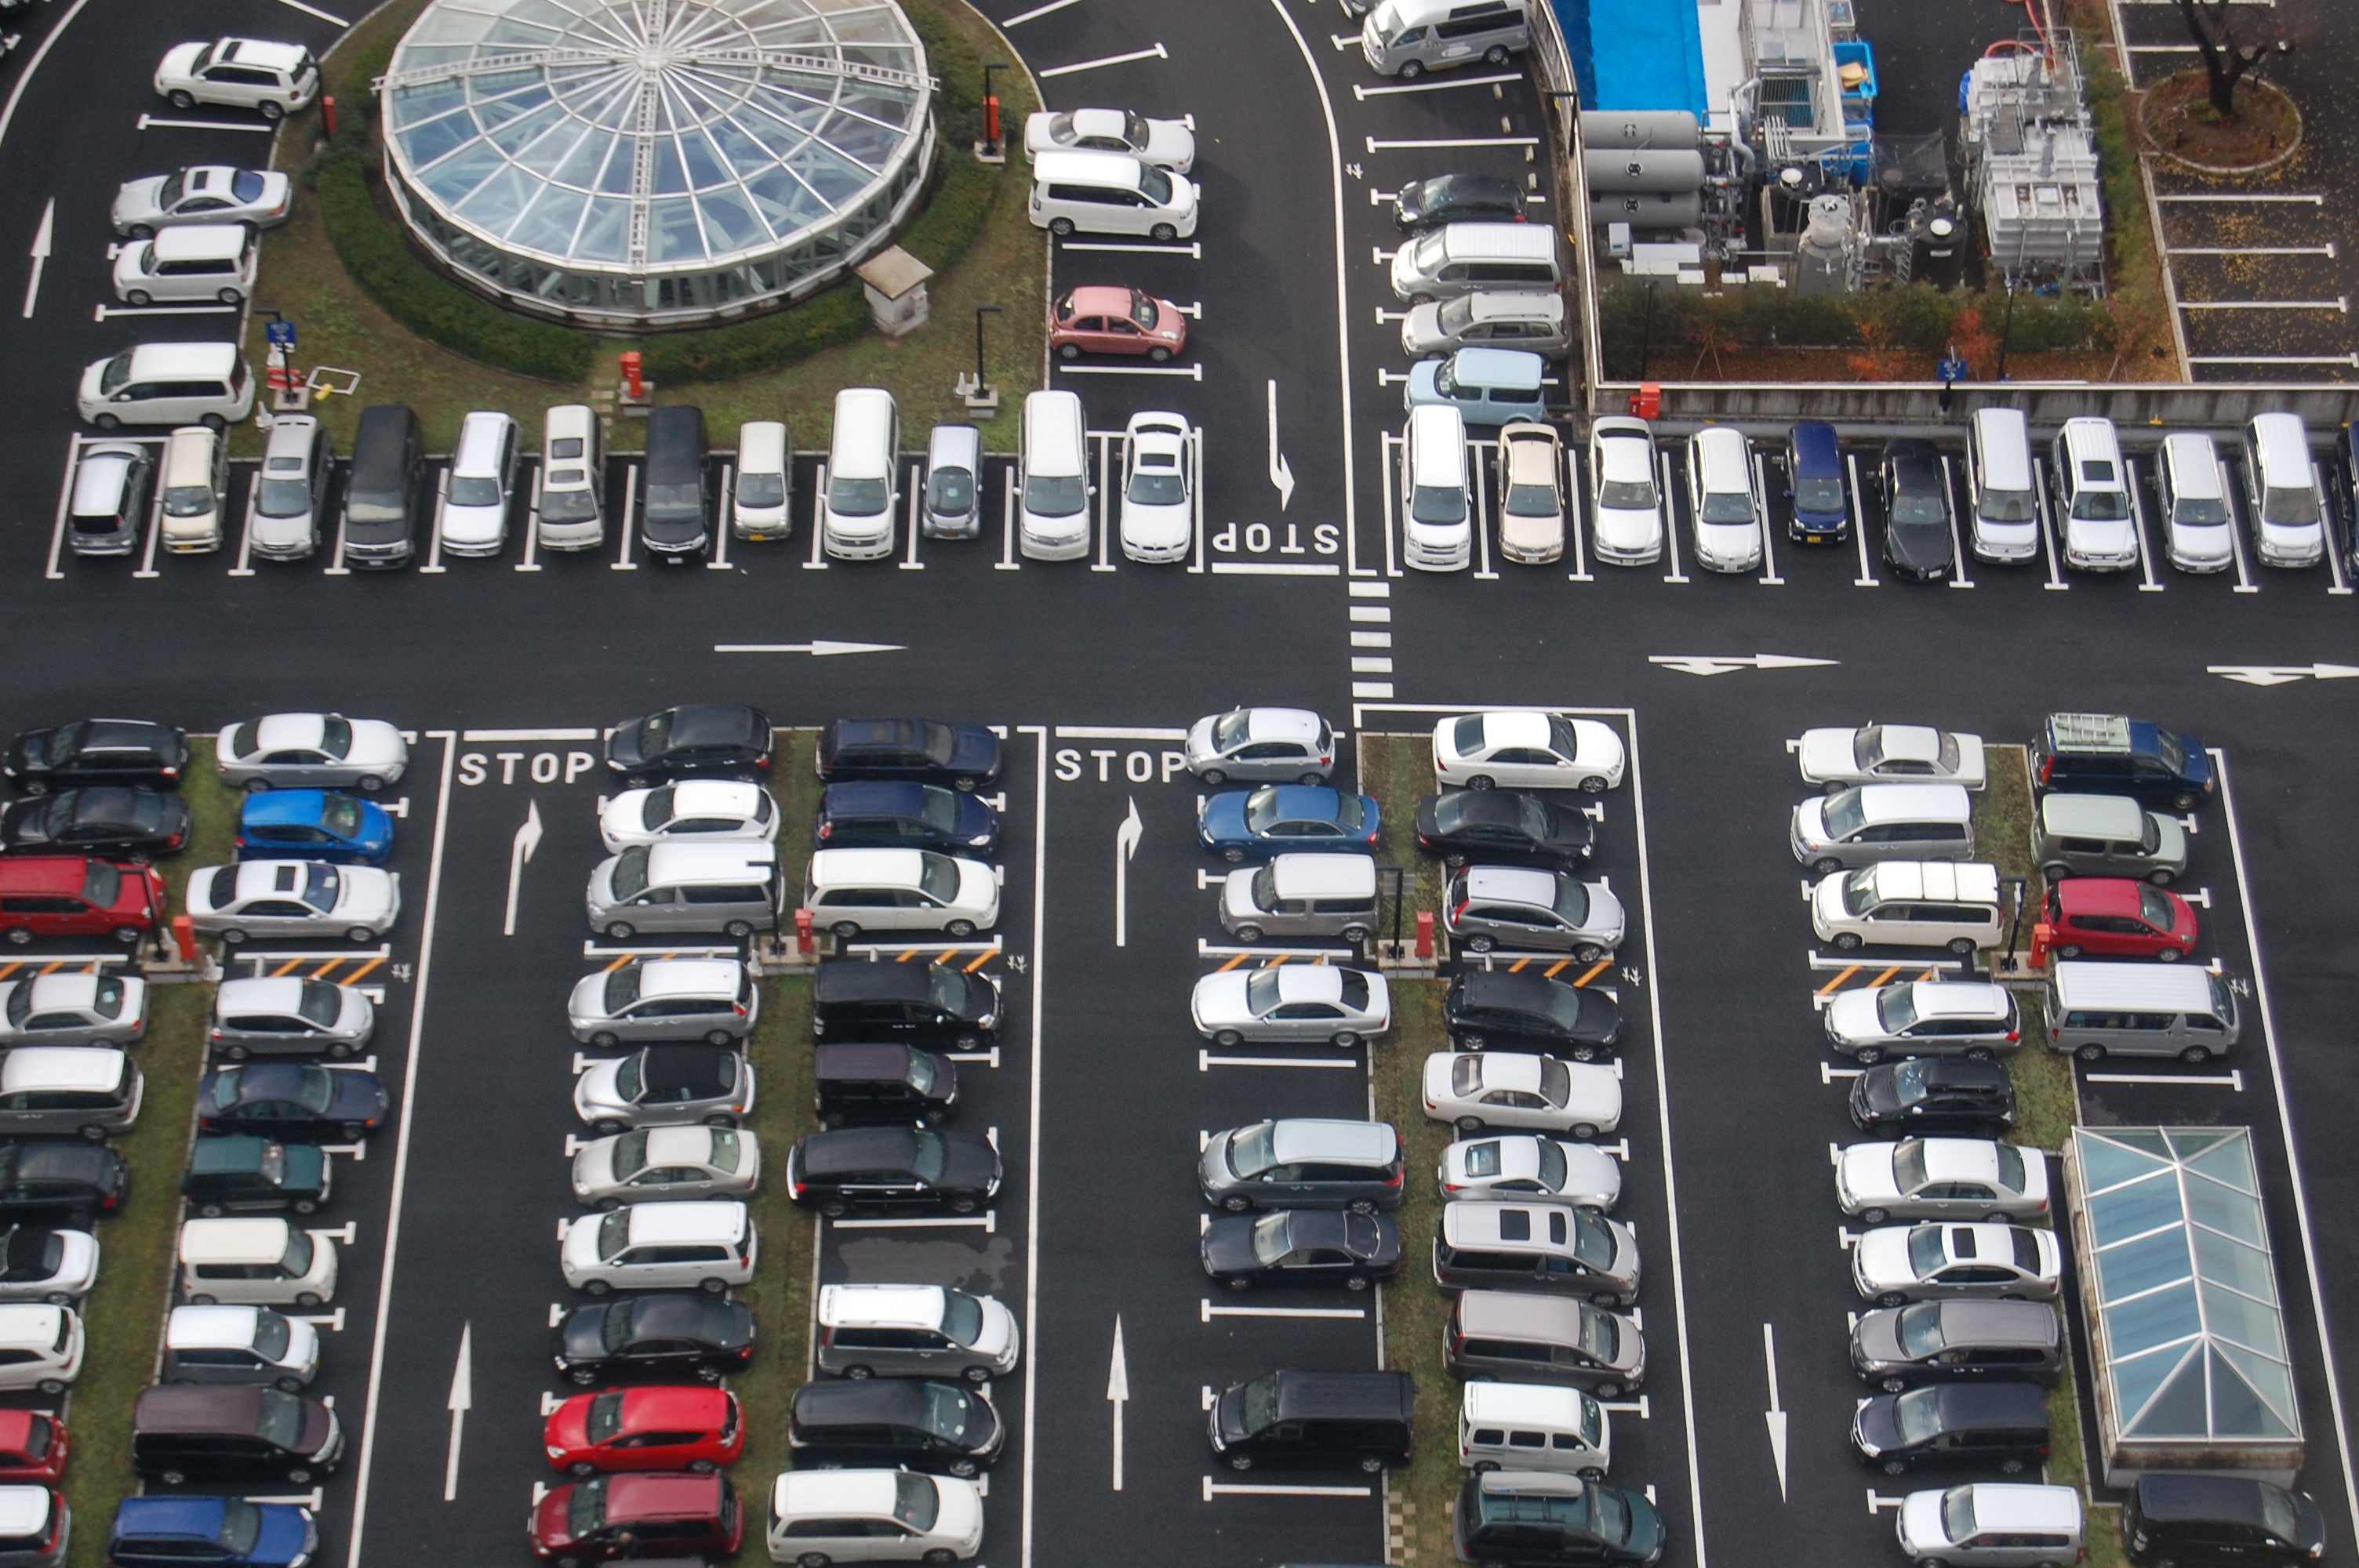 Parking lots like this one in Tokyo currently take up vast tracts of otherwise useless urban space, argues Lyft.